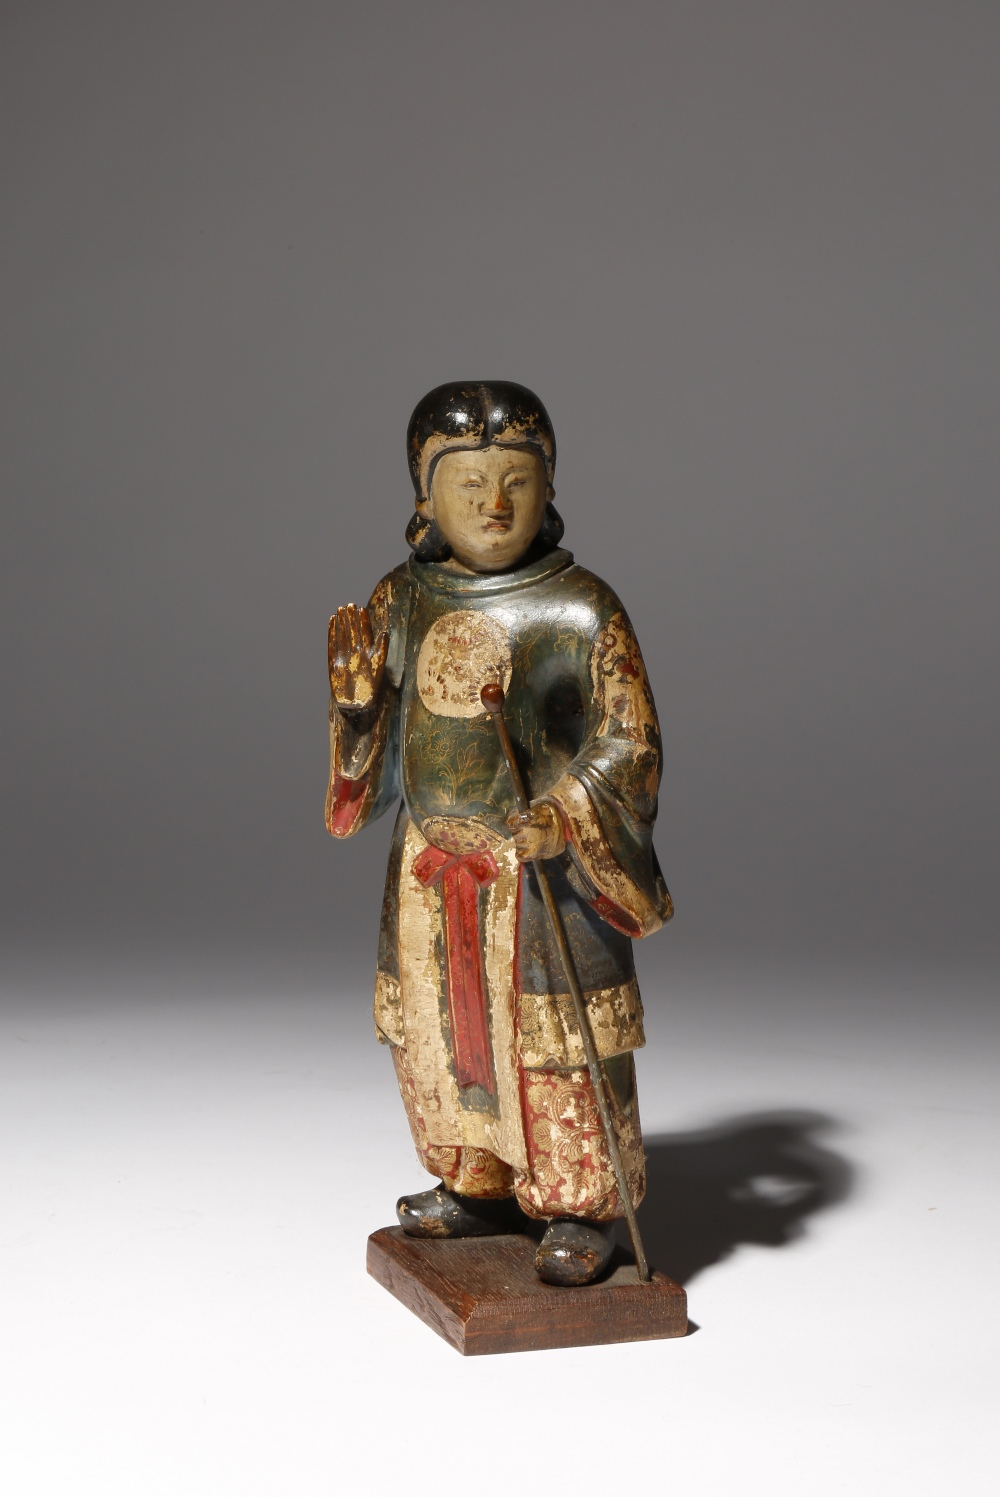 A RARE JAPANESE POLYCHROME LACQUERED WOOD CARVING OF A PROTECTIVE DEITY EDO PERIOD, PROBABLY 18TH